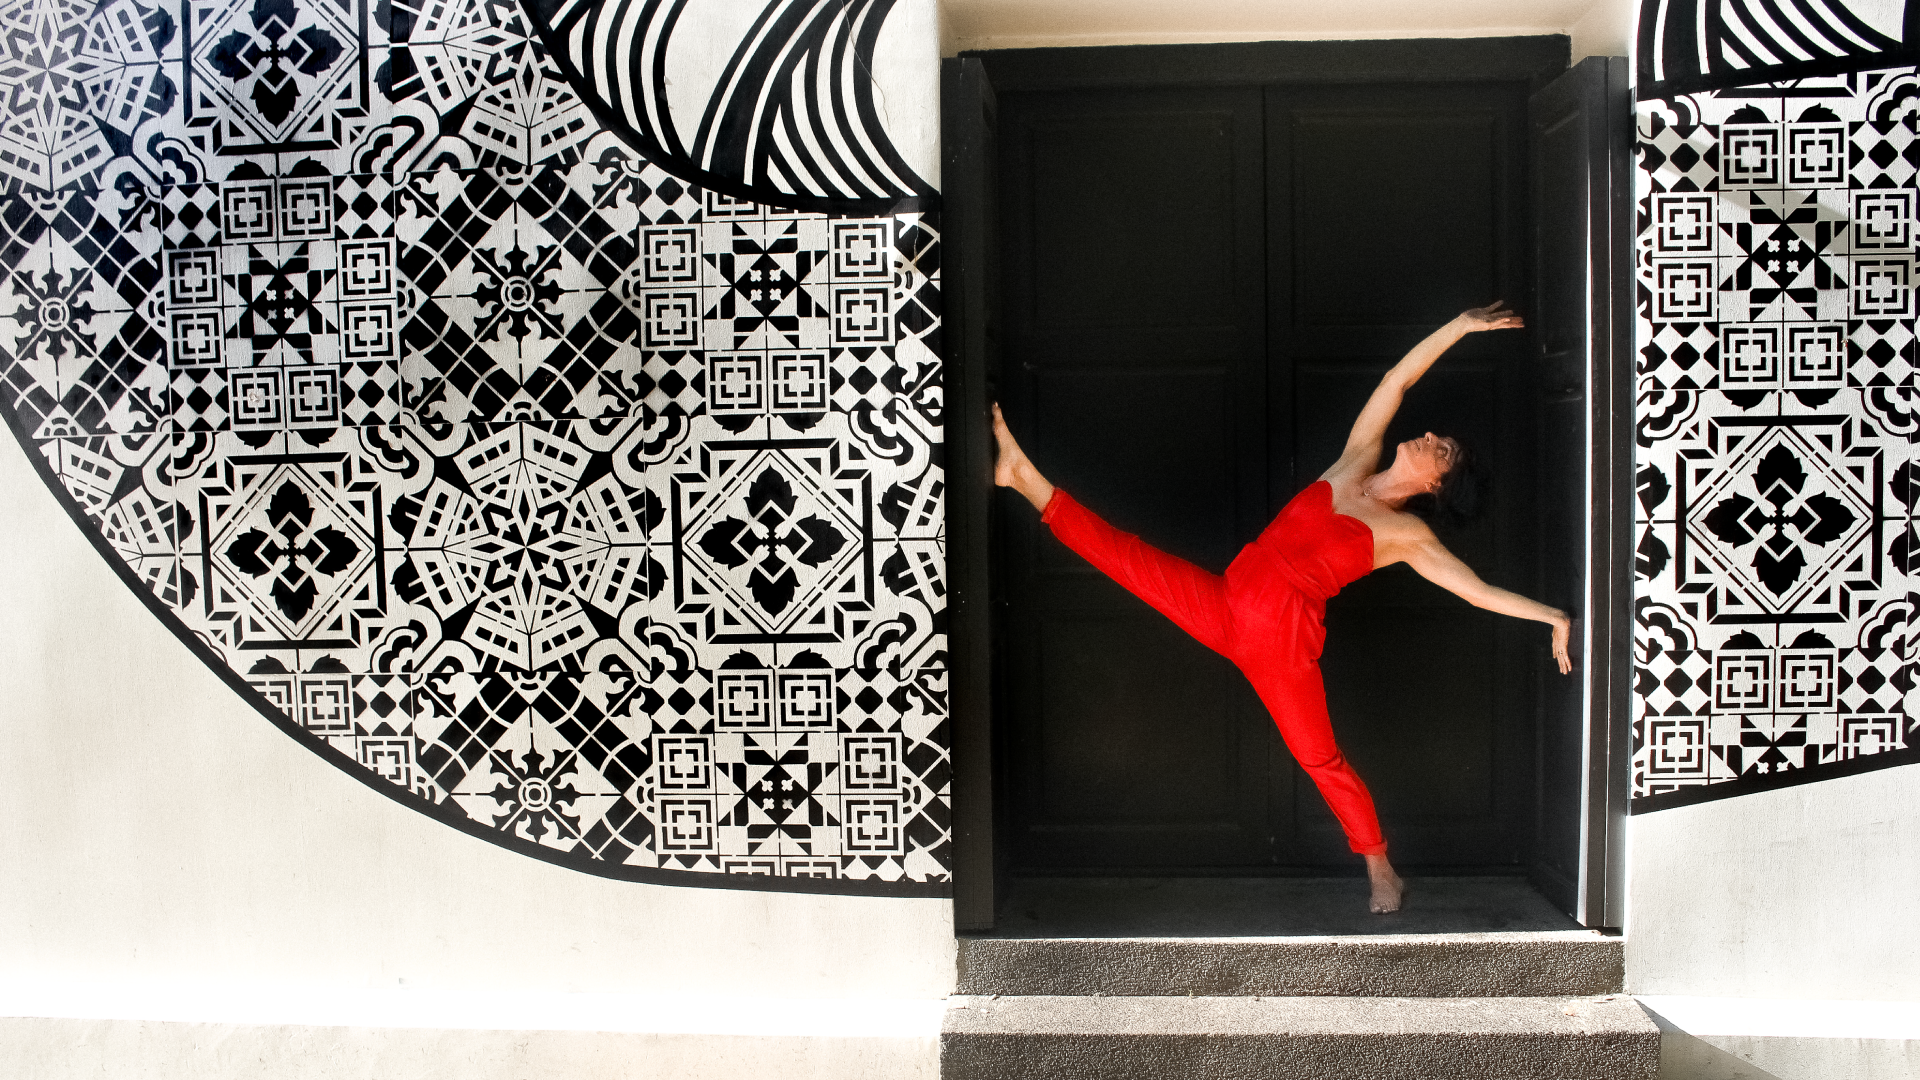 empower with yoga by manale ganiere